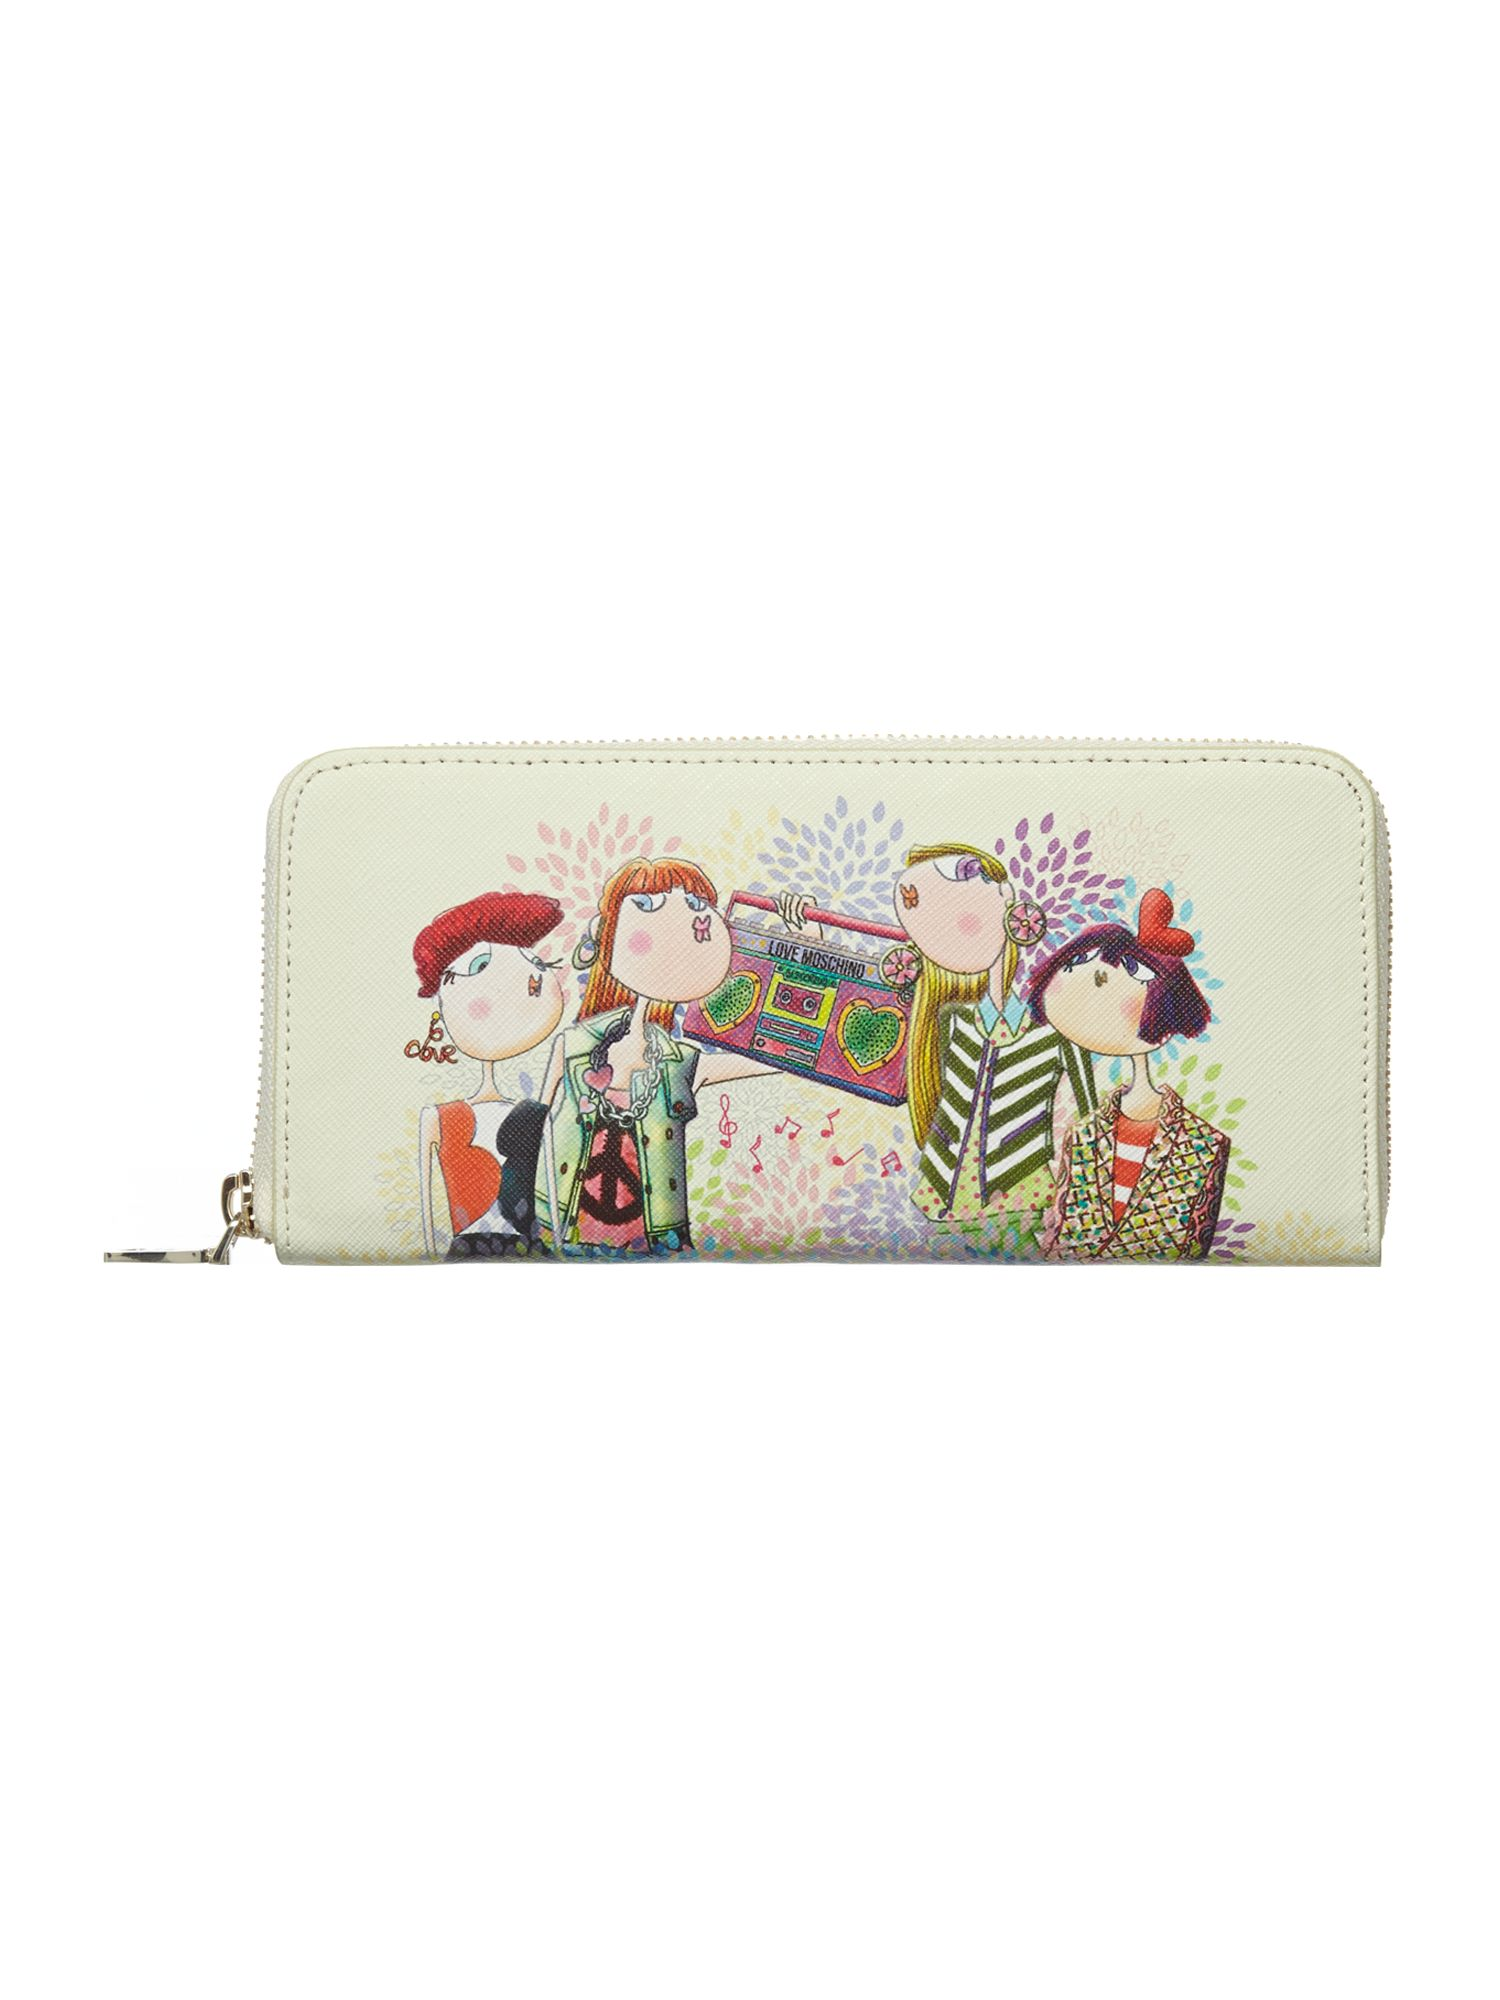 White ziparound charming purse